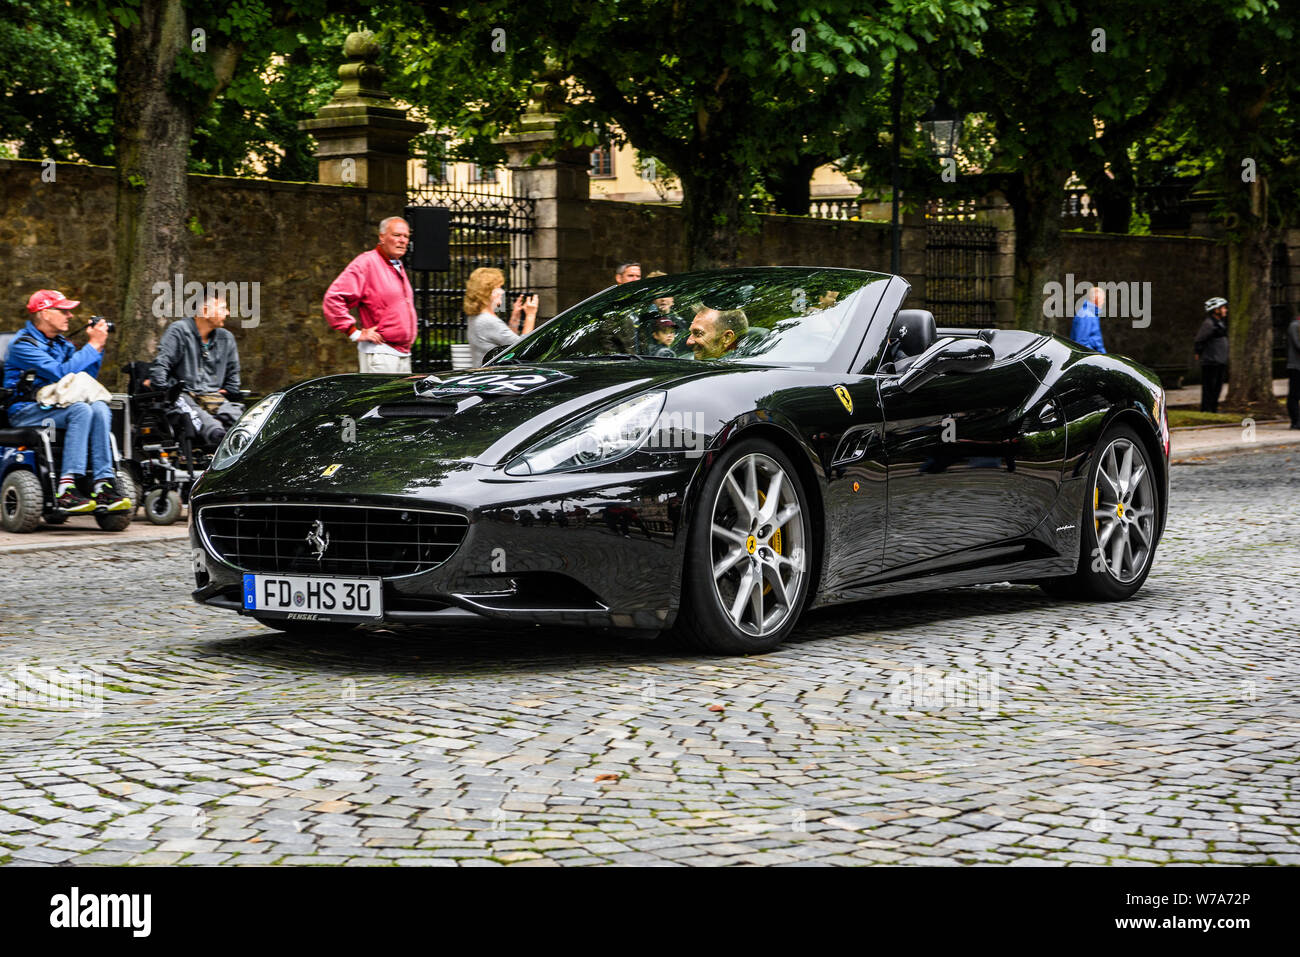 Germany Fulda Jul 2019 Black Ferrari California Type F149 Coupe Is A Grand Touring Sports Car Produced By The Italian Automotive Manufacturer Ferr Stock Photo Alamy